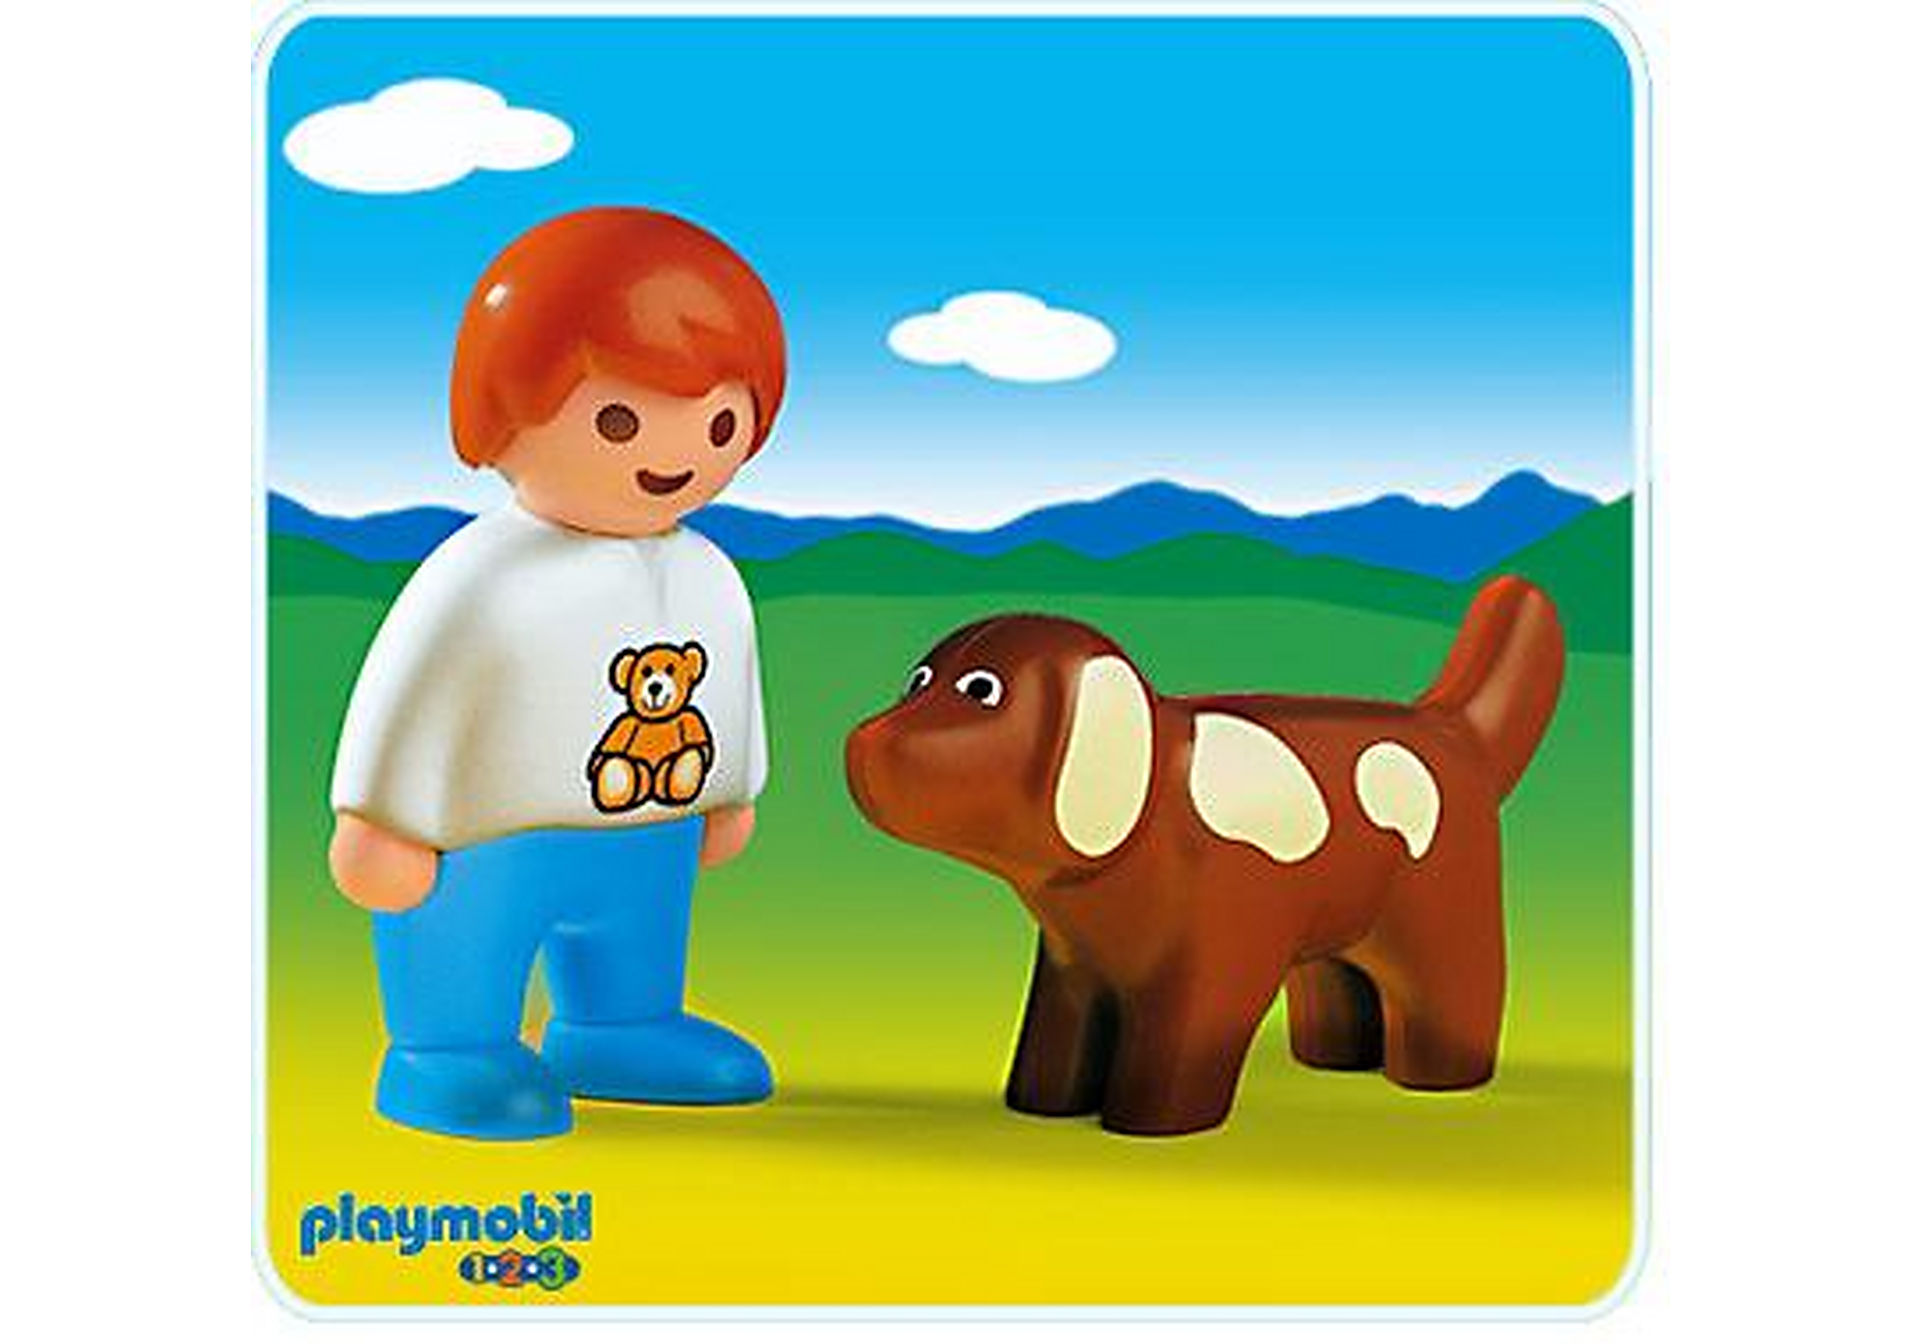 http://media.playmobil.com/i/playmobil/6727-A_product_detail/Junge mit Hund